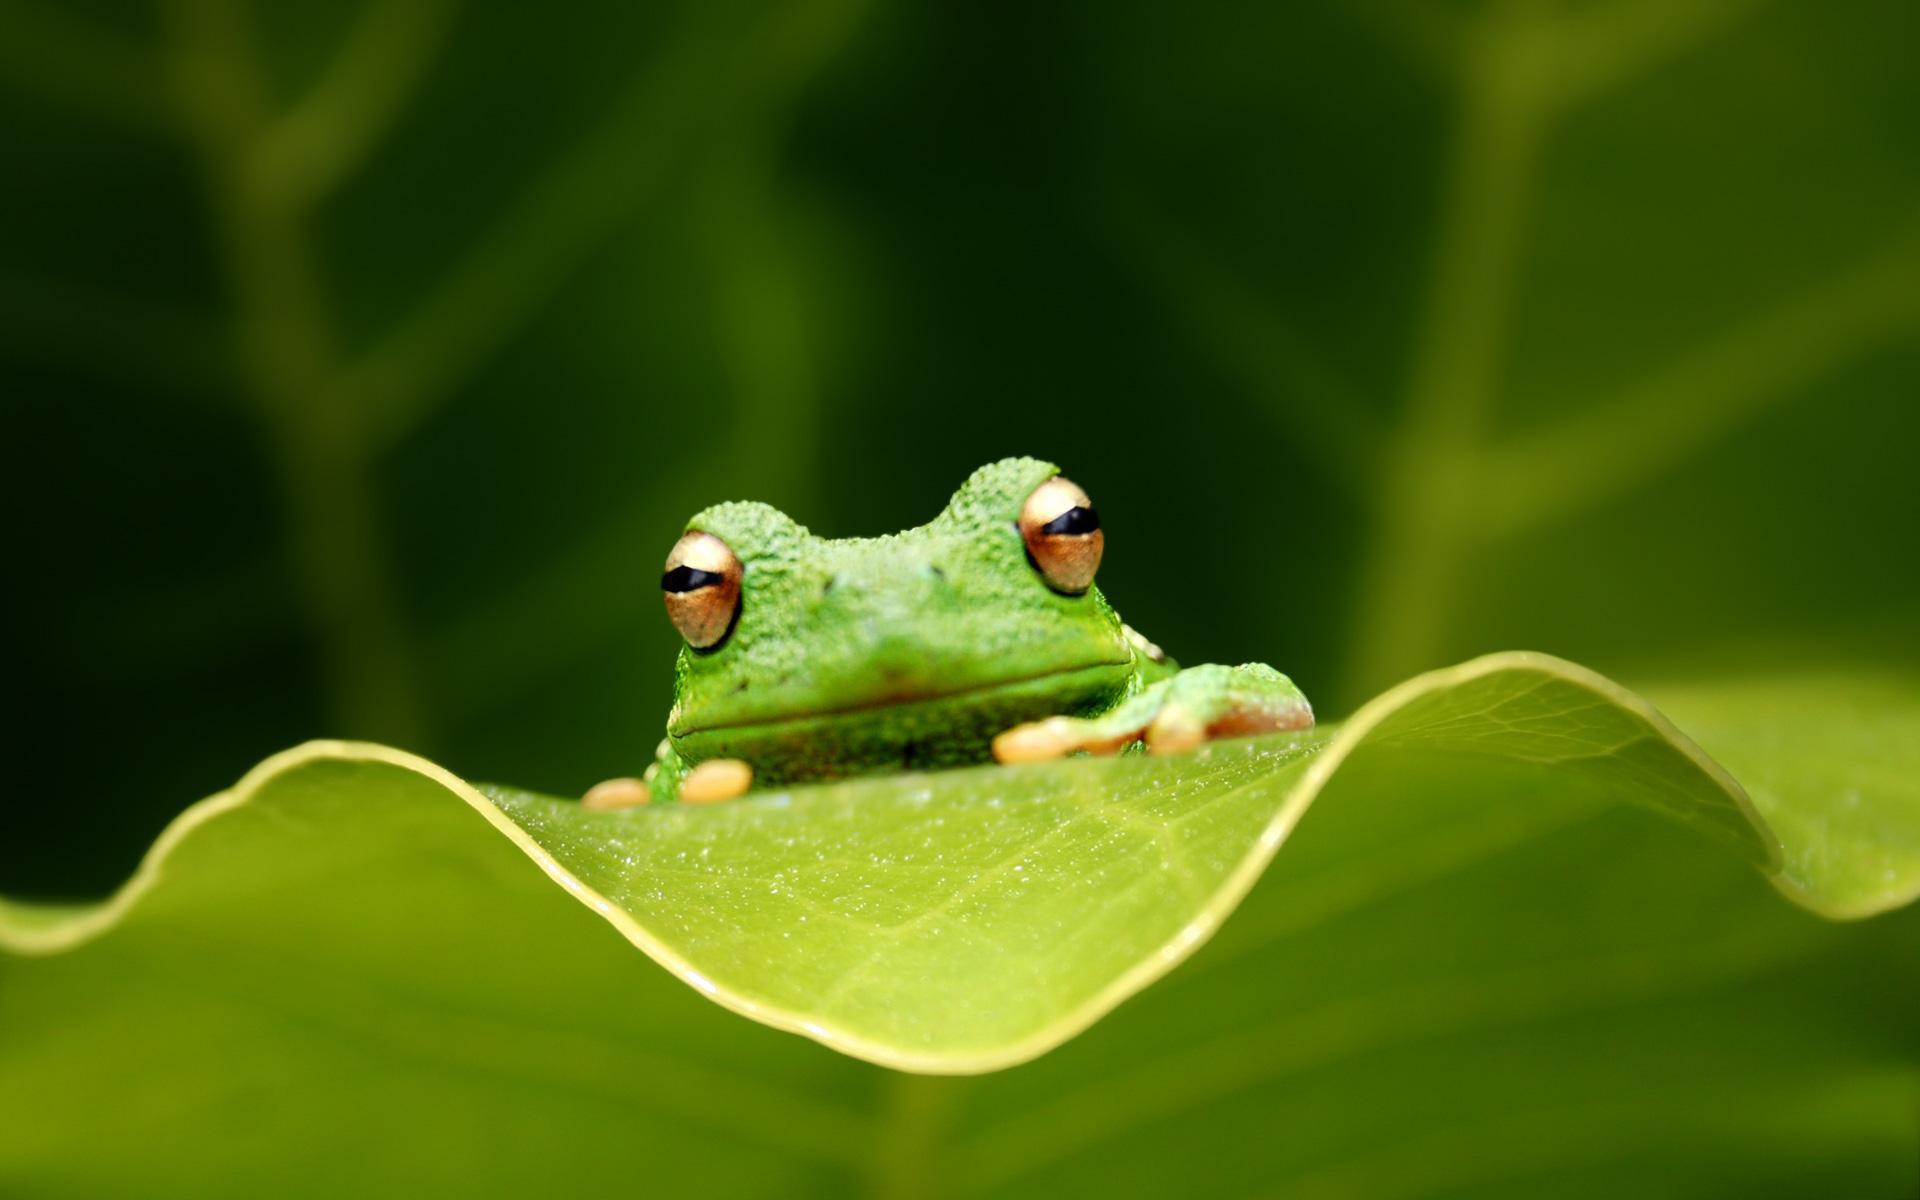 Green Frog On Wallpapers (3)